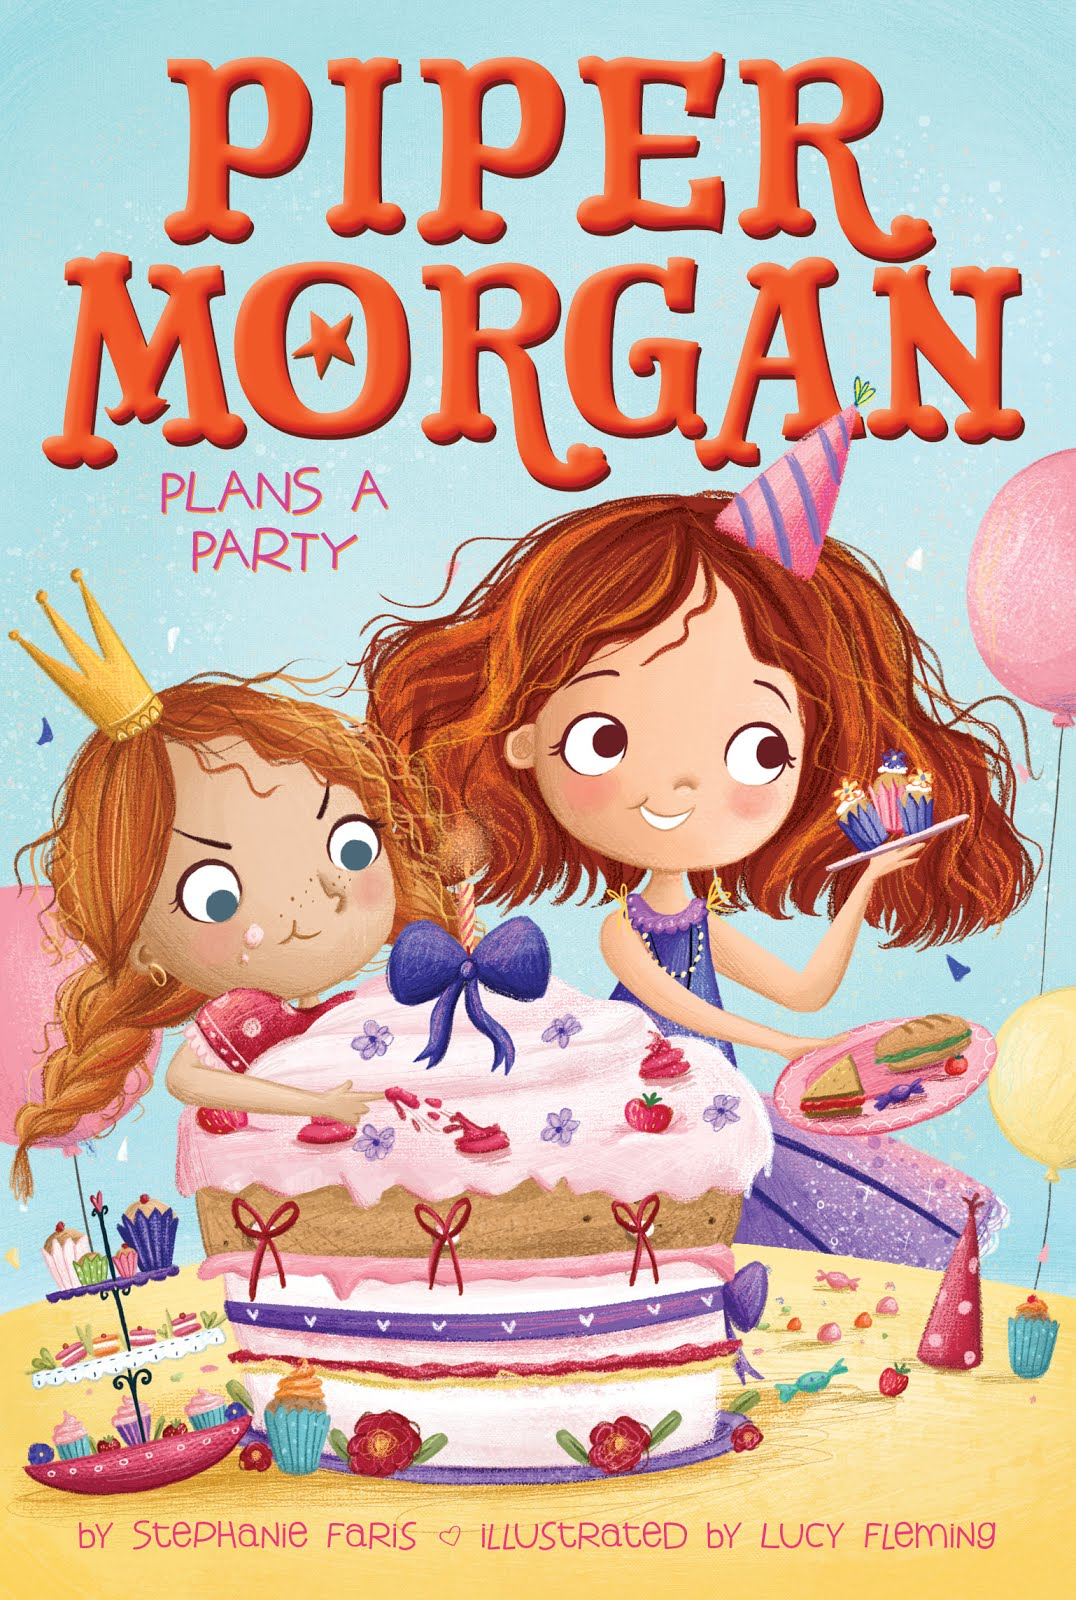 Piper Morgan Plans a Party (Book 5 of 5)